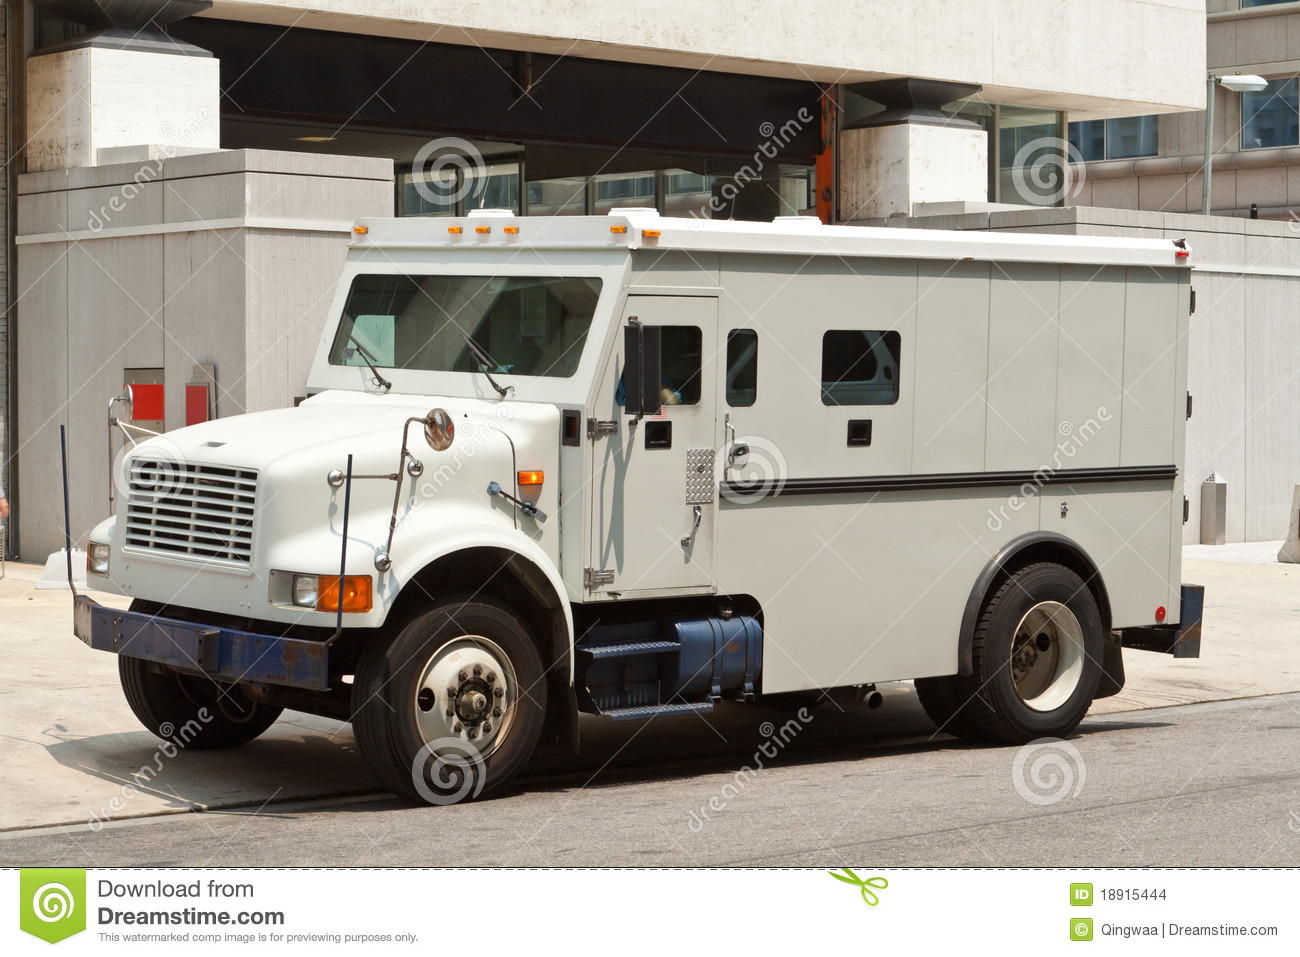 Armored car clipart.